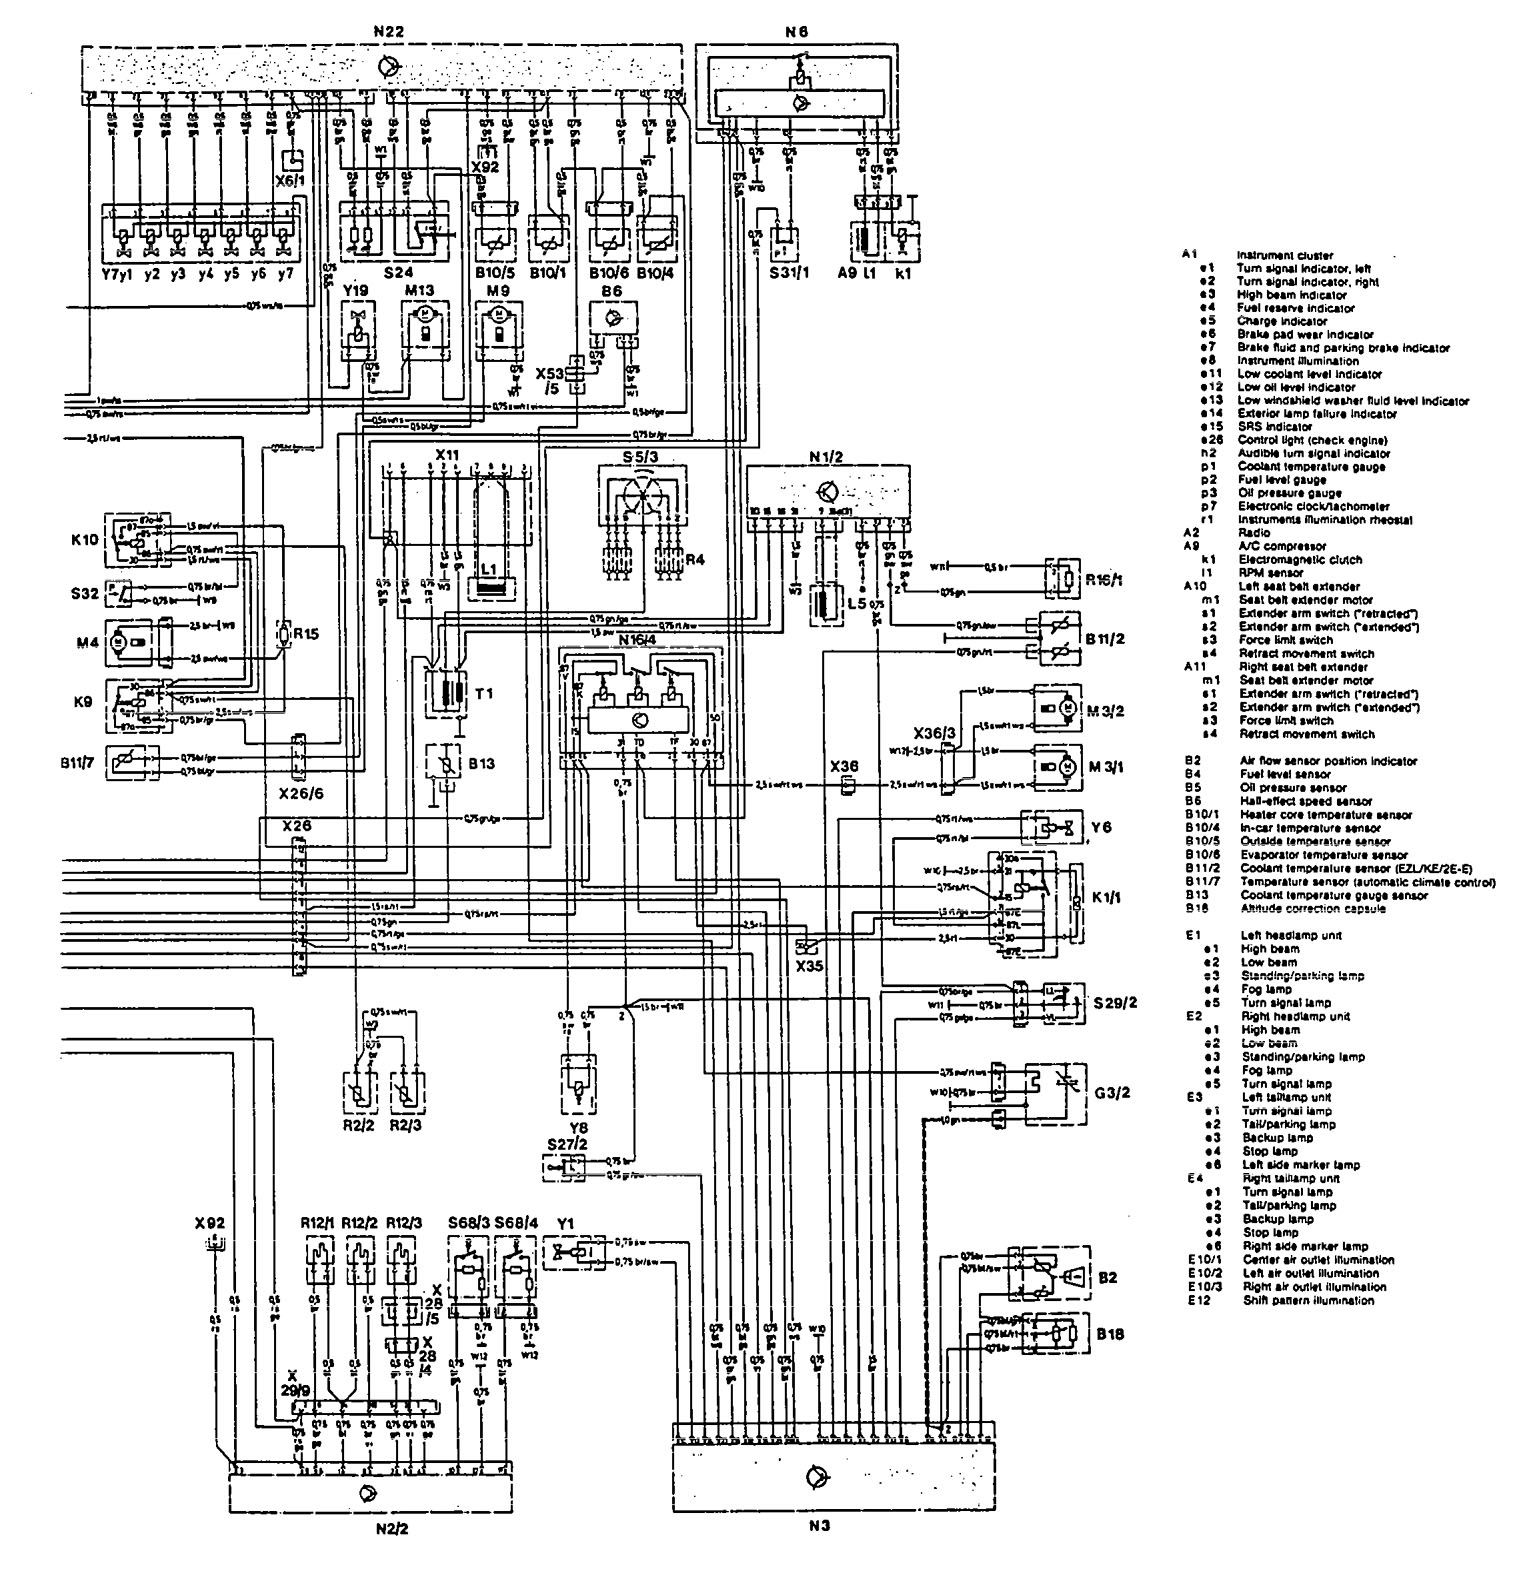 1993 Mercedes Benz 500sl Wiring Diagram Auto Electrical Fuse Box Related With